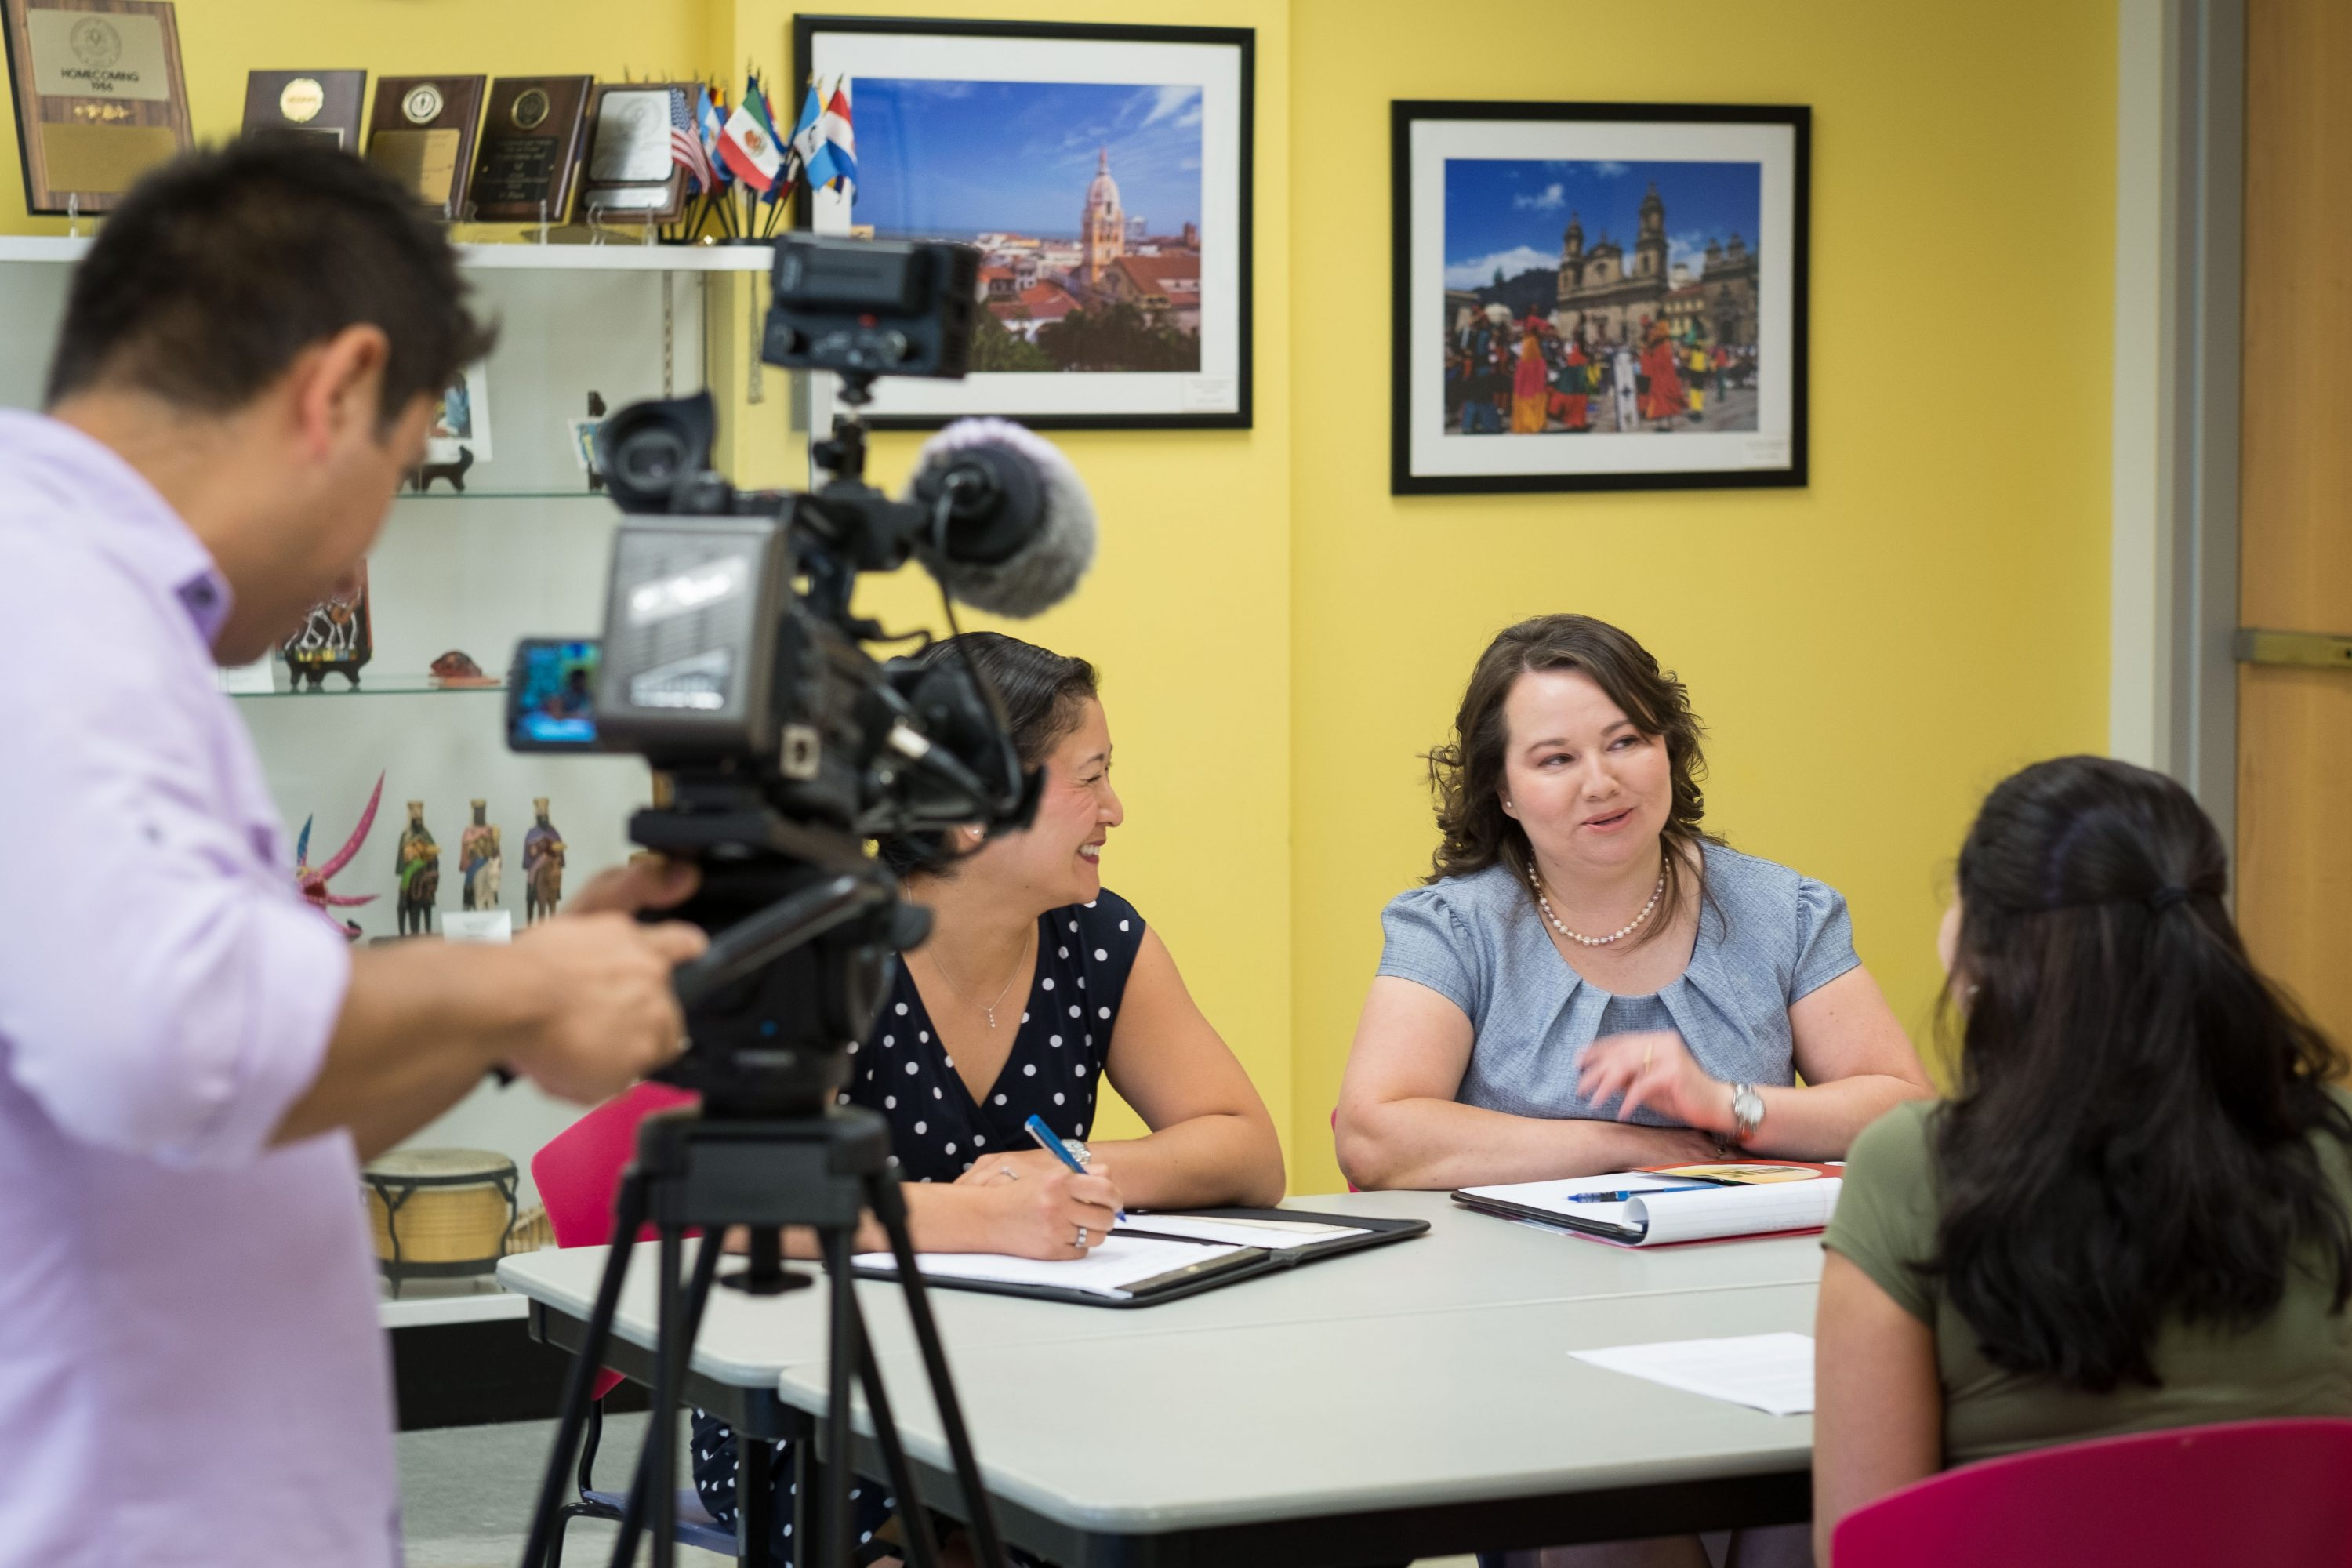 Juan Carlos Sanchez of Univision , left, records Jen Morenus '97 (SFA), assistant director, Fany D. Hannon '08 MA, director, and Natalia Gutierrez '18 (ENG) at the Puerto Rican/Latin American Cultural Center on Aug. 12, 2016. (Peter Morenus/UConn Photo)